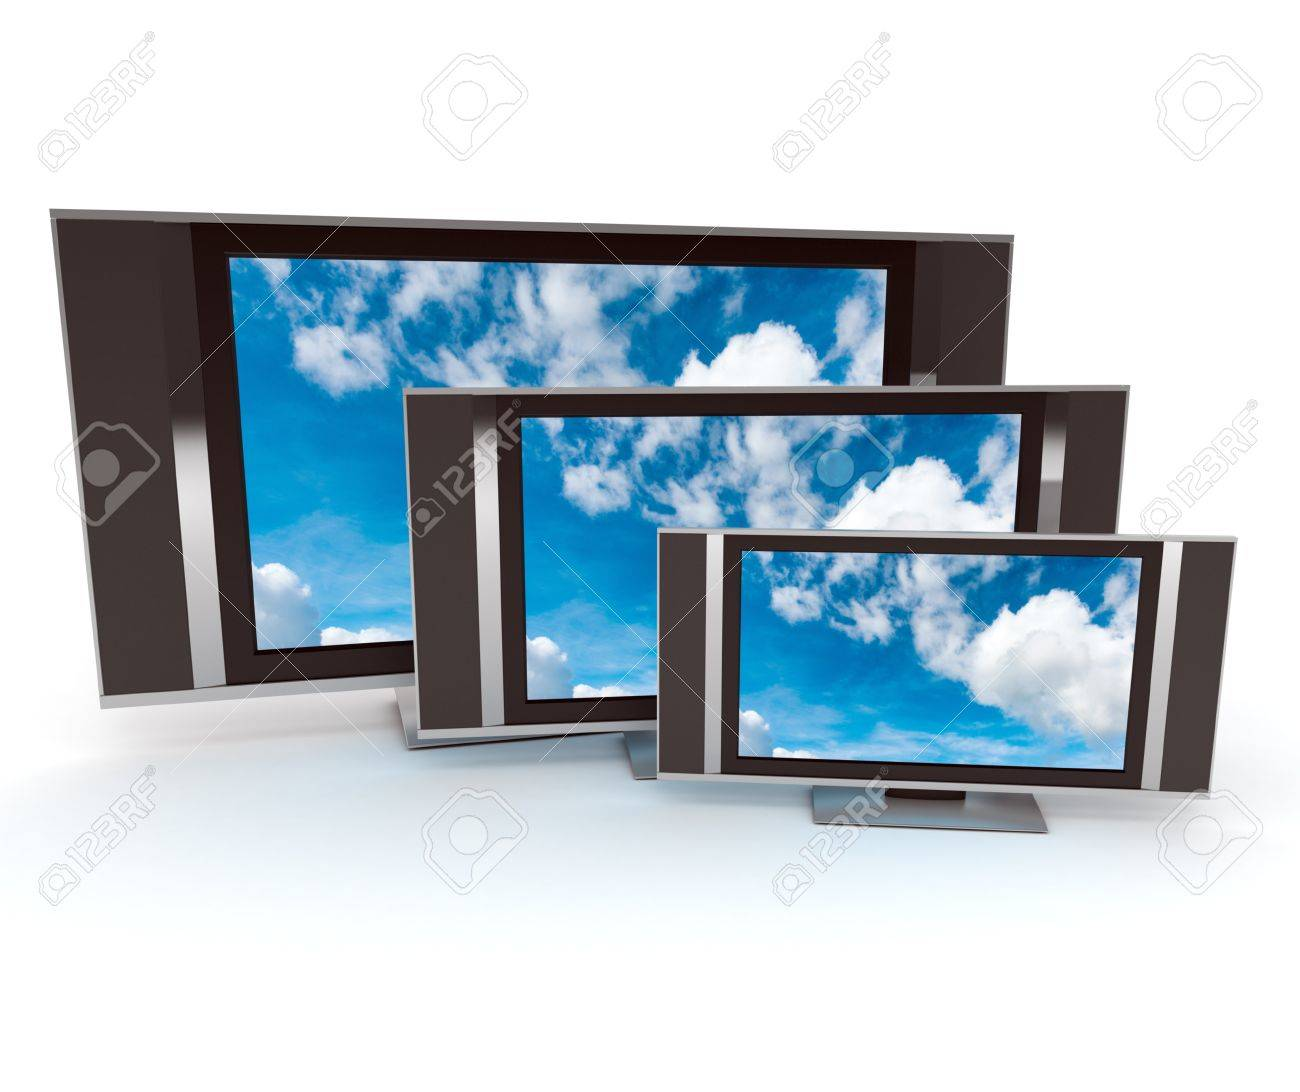 Three tvs with skys on the screens and white background Stock Photo - 19194720